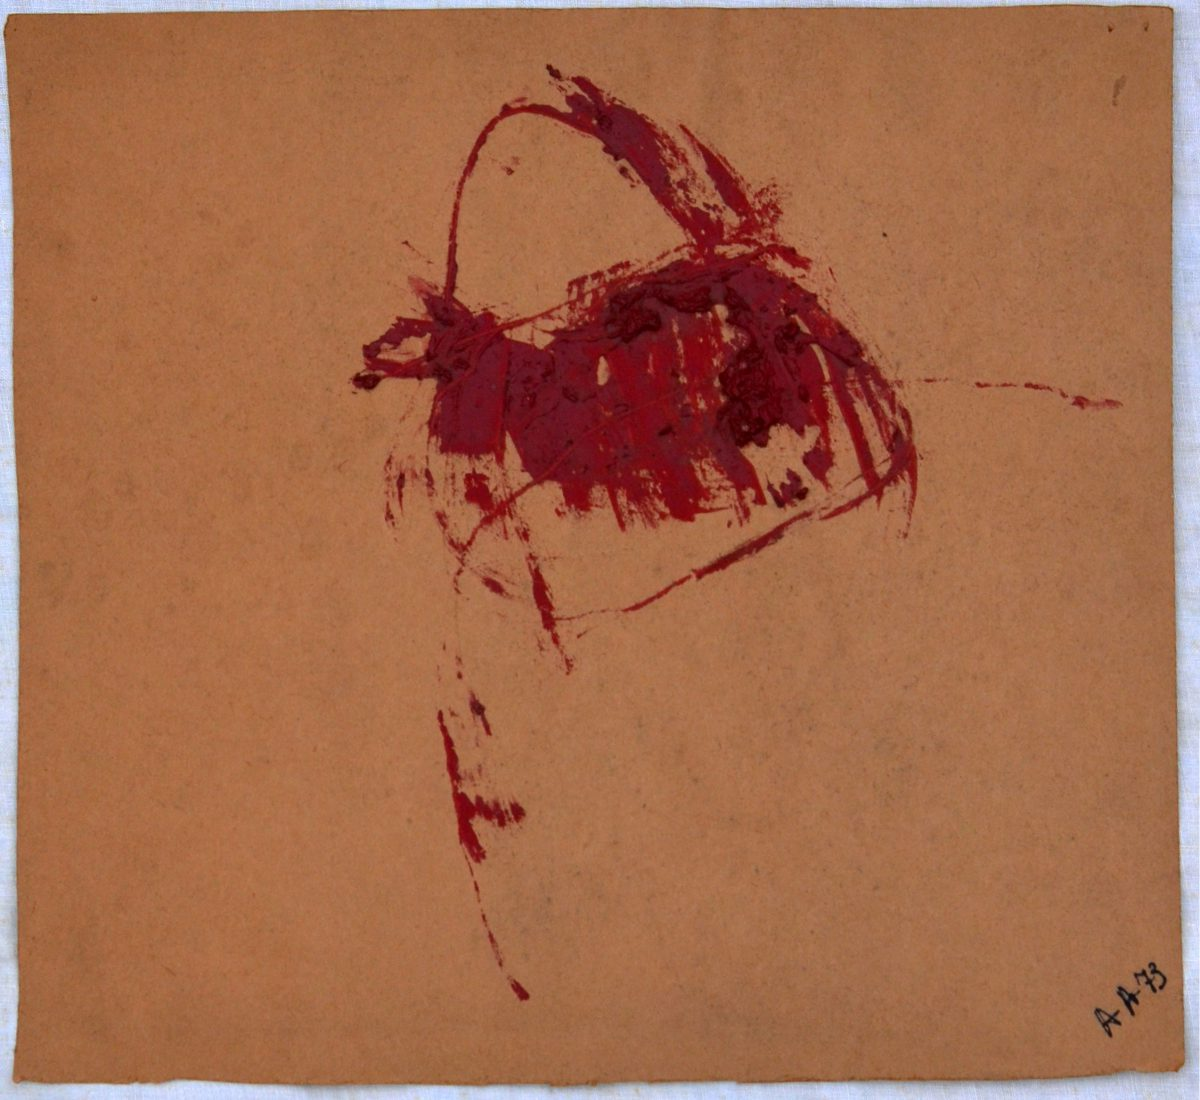 Angel Alonso - Signe rouge - 33 X 35 cm - 1973